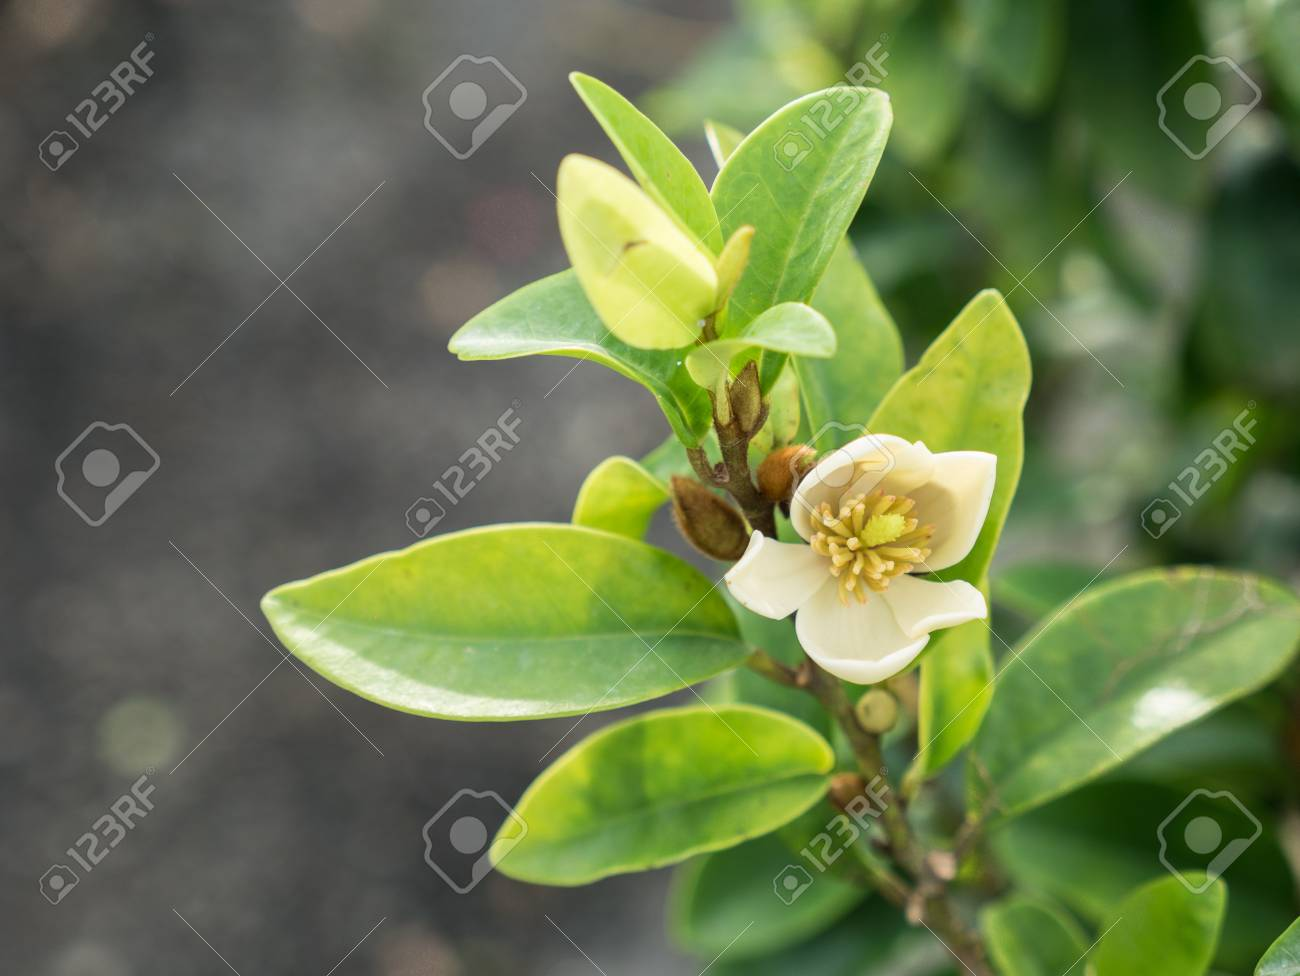 The White Yellow Port Wine Magnolia Flower Blooming In The Garden